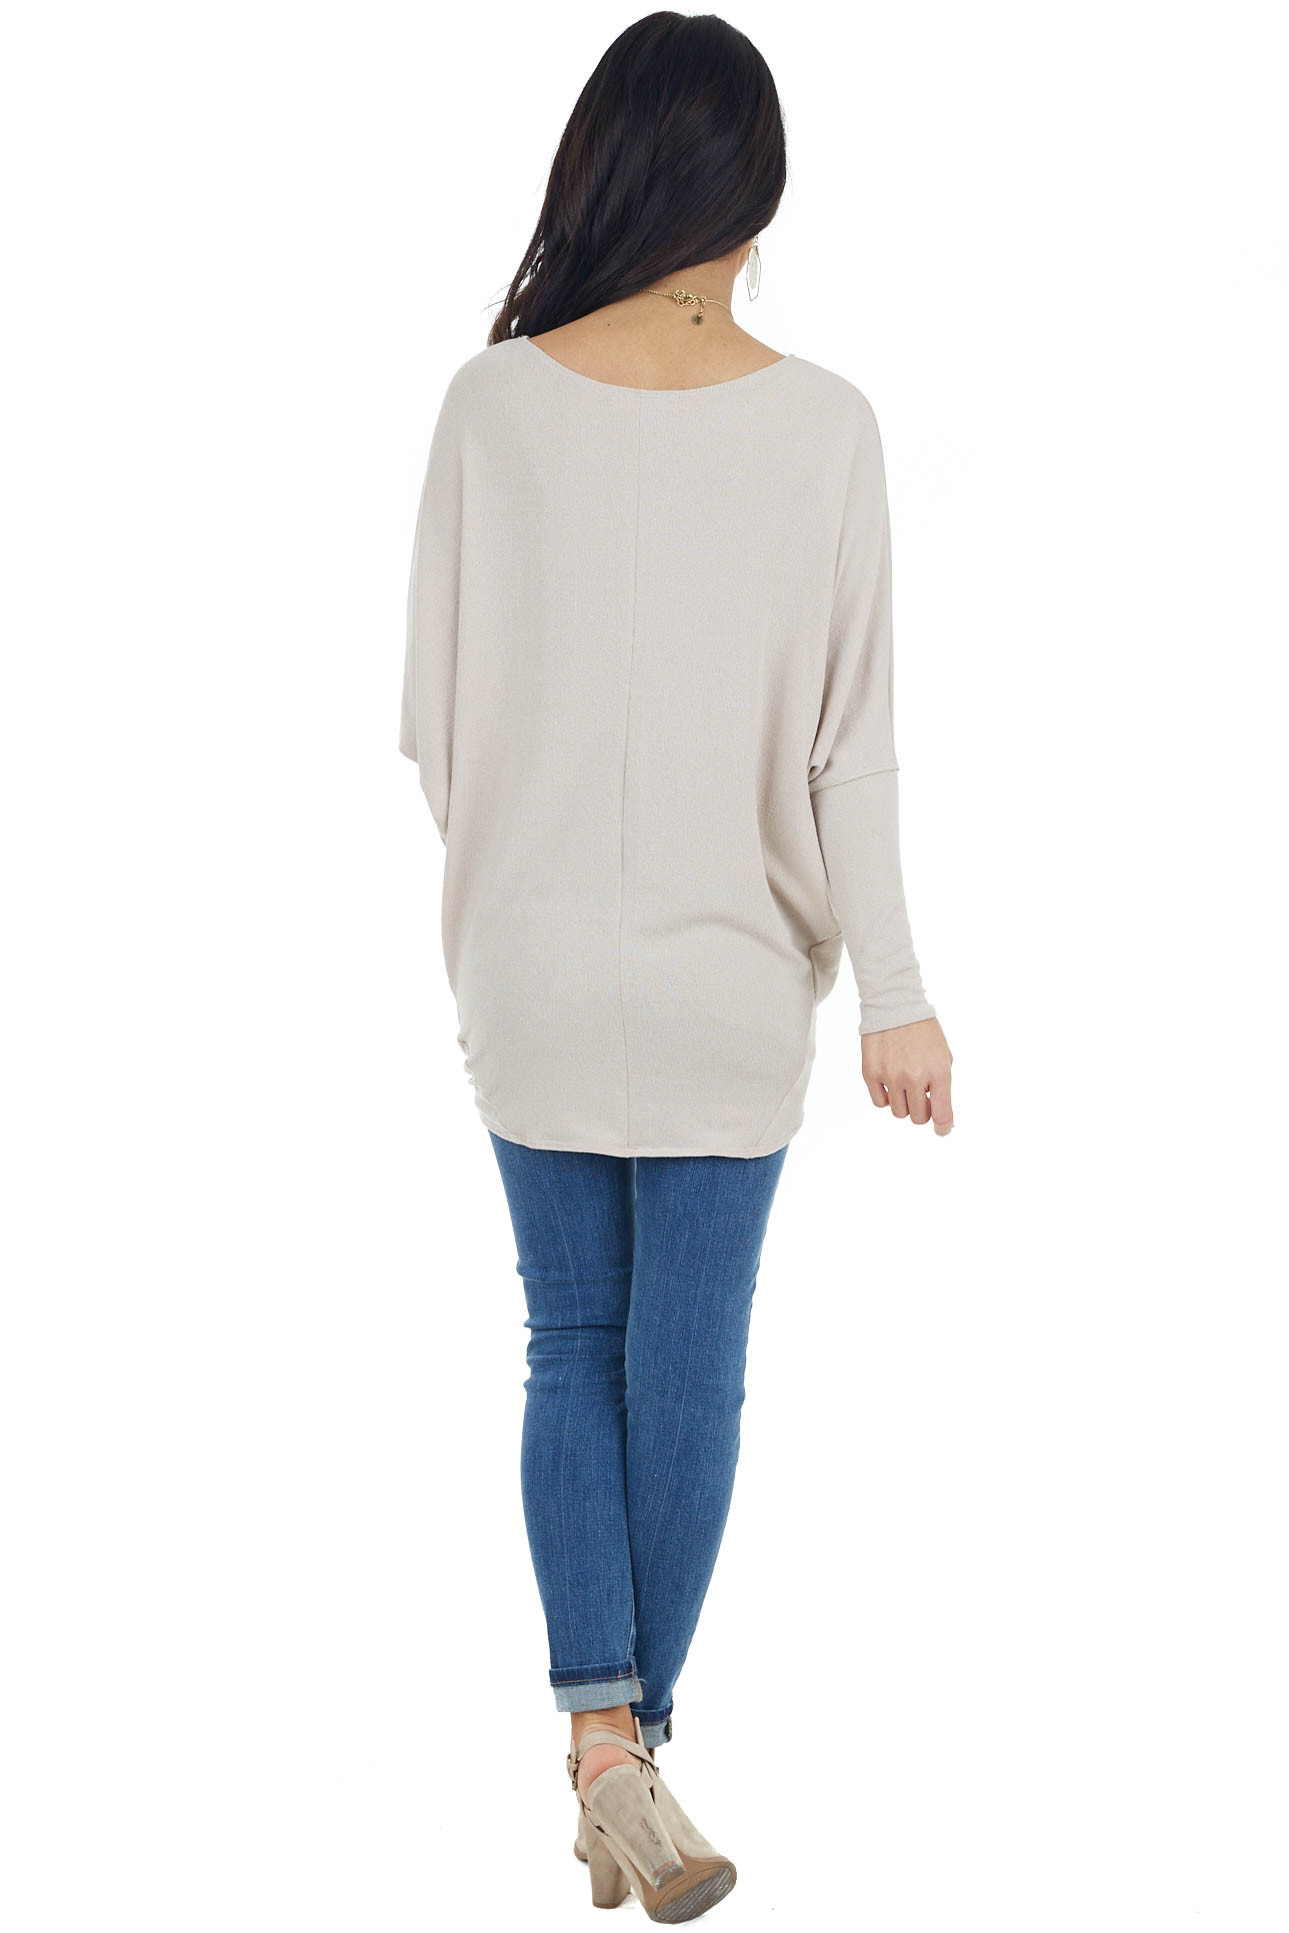 Beige Round Neck Knit Top with Long Dolman Sleeves